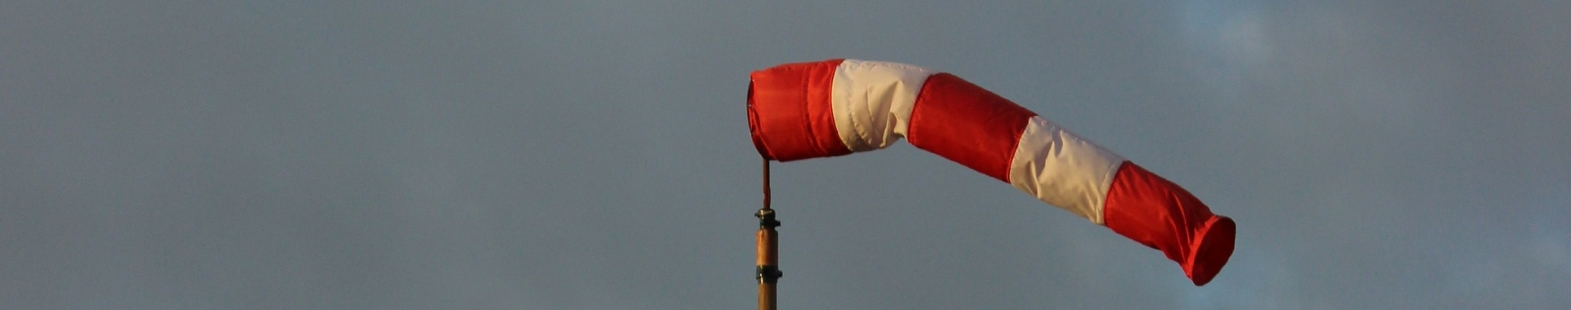 Image shows a red and white wind sock against a cloudy sky. Photo for the Wind at Lake Saint Charles article by Richard Leduc